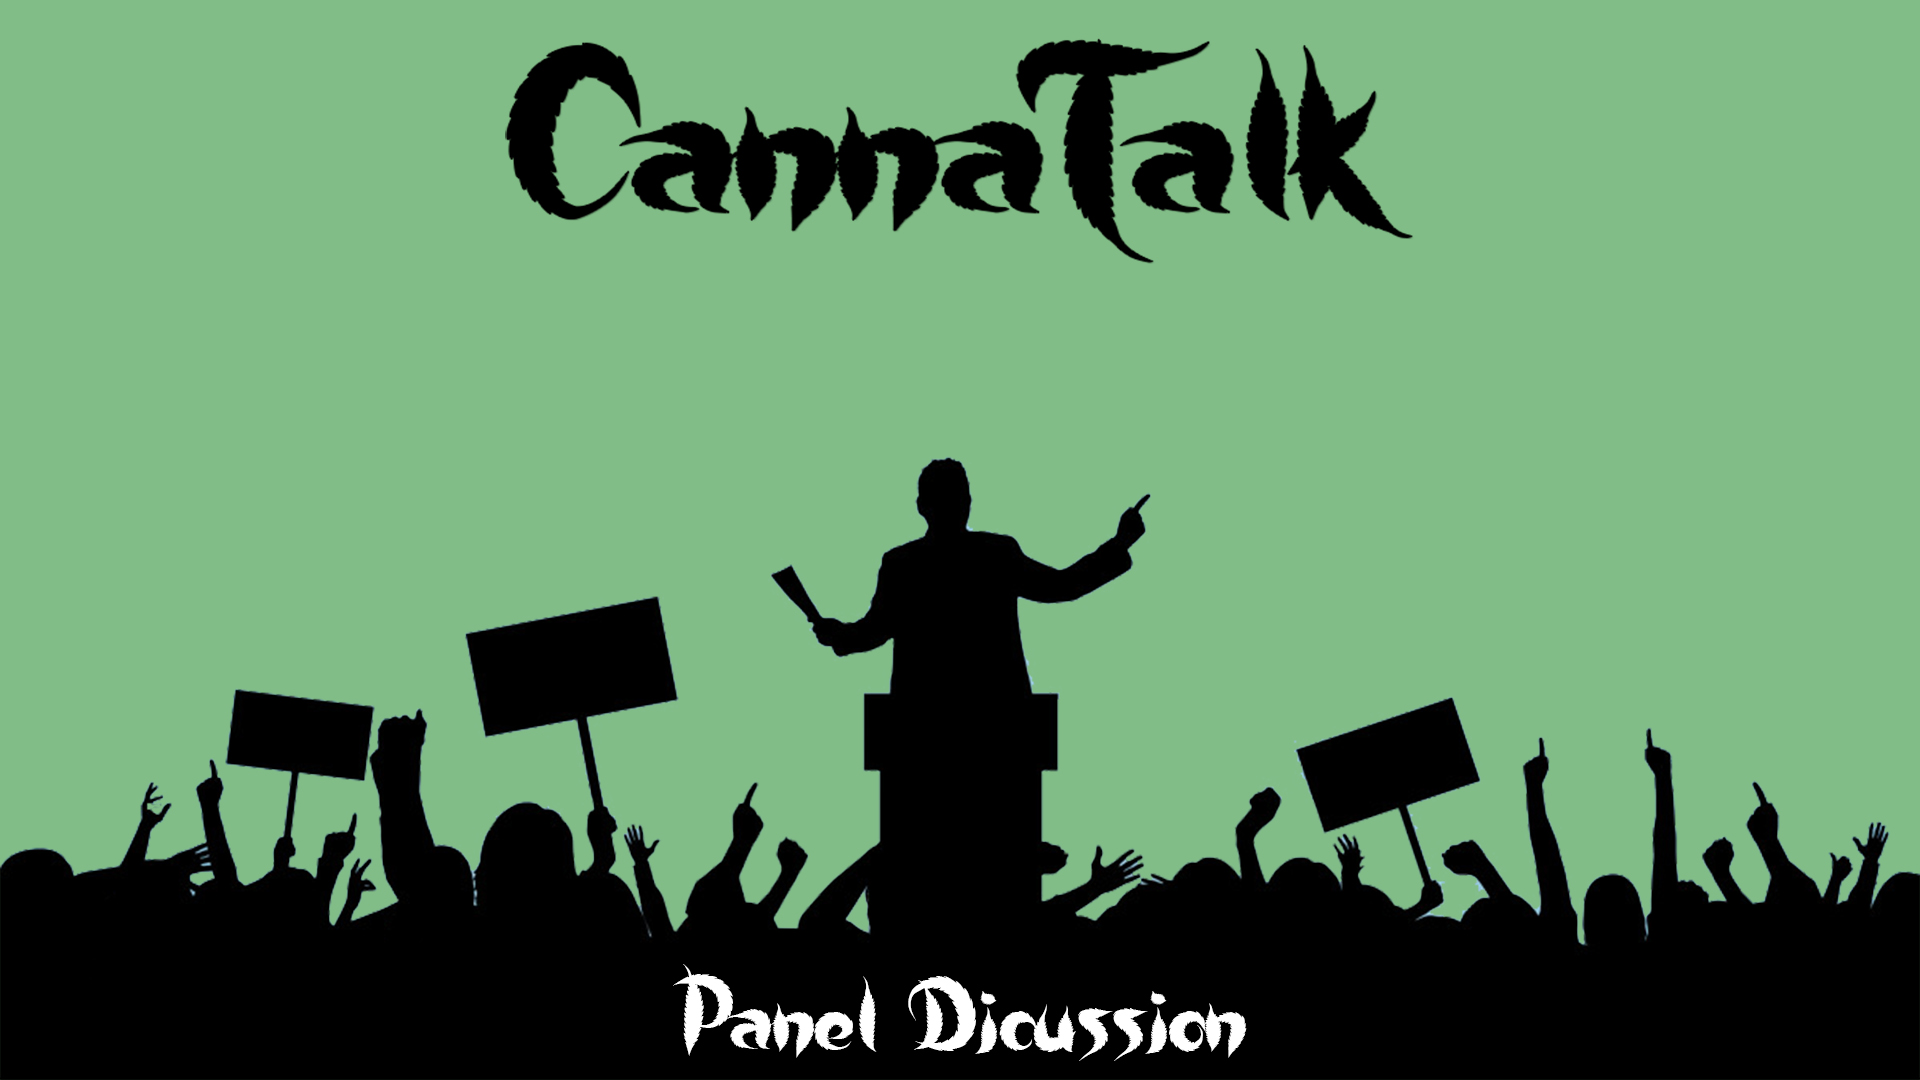 CannaTalk's panel dicussions